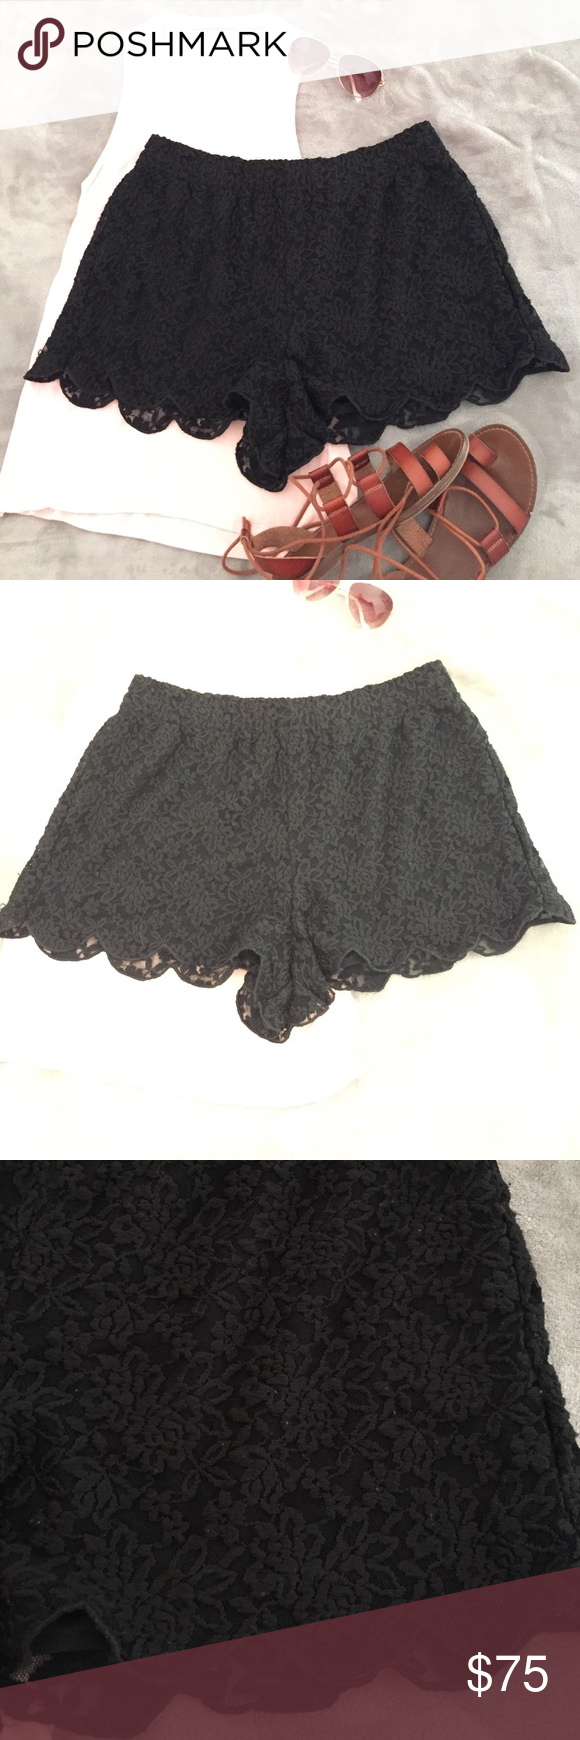 Free People Embroidered Scalloped Hem Lace Skort Beautiful black embroidered lace skort, lined. Overall very good condition-some minor pilling that can easily be removed, only worn a few times as it has always been a bit big on me. It's so cute I wish it still fit me :( Free People Shorts Skorts